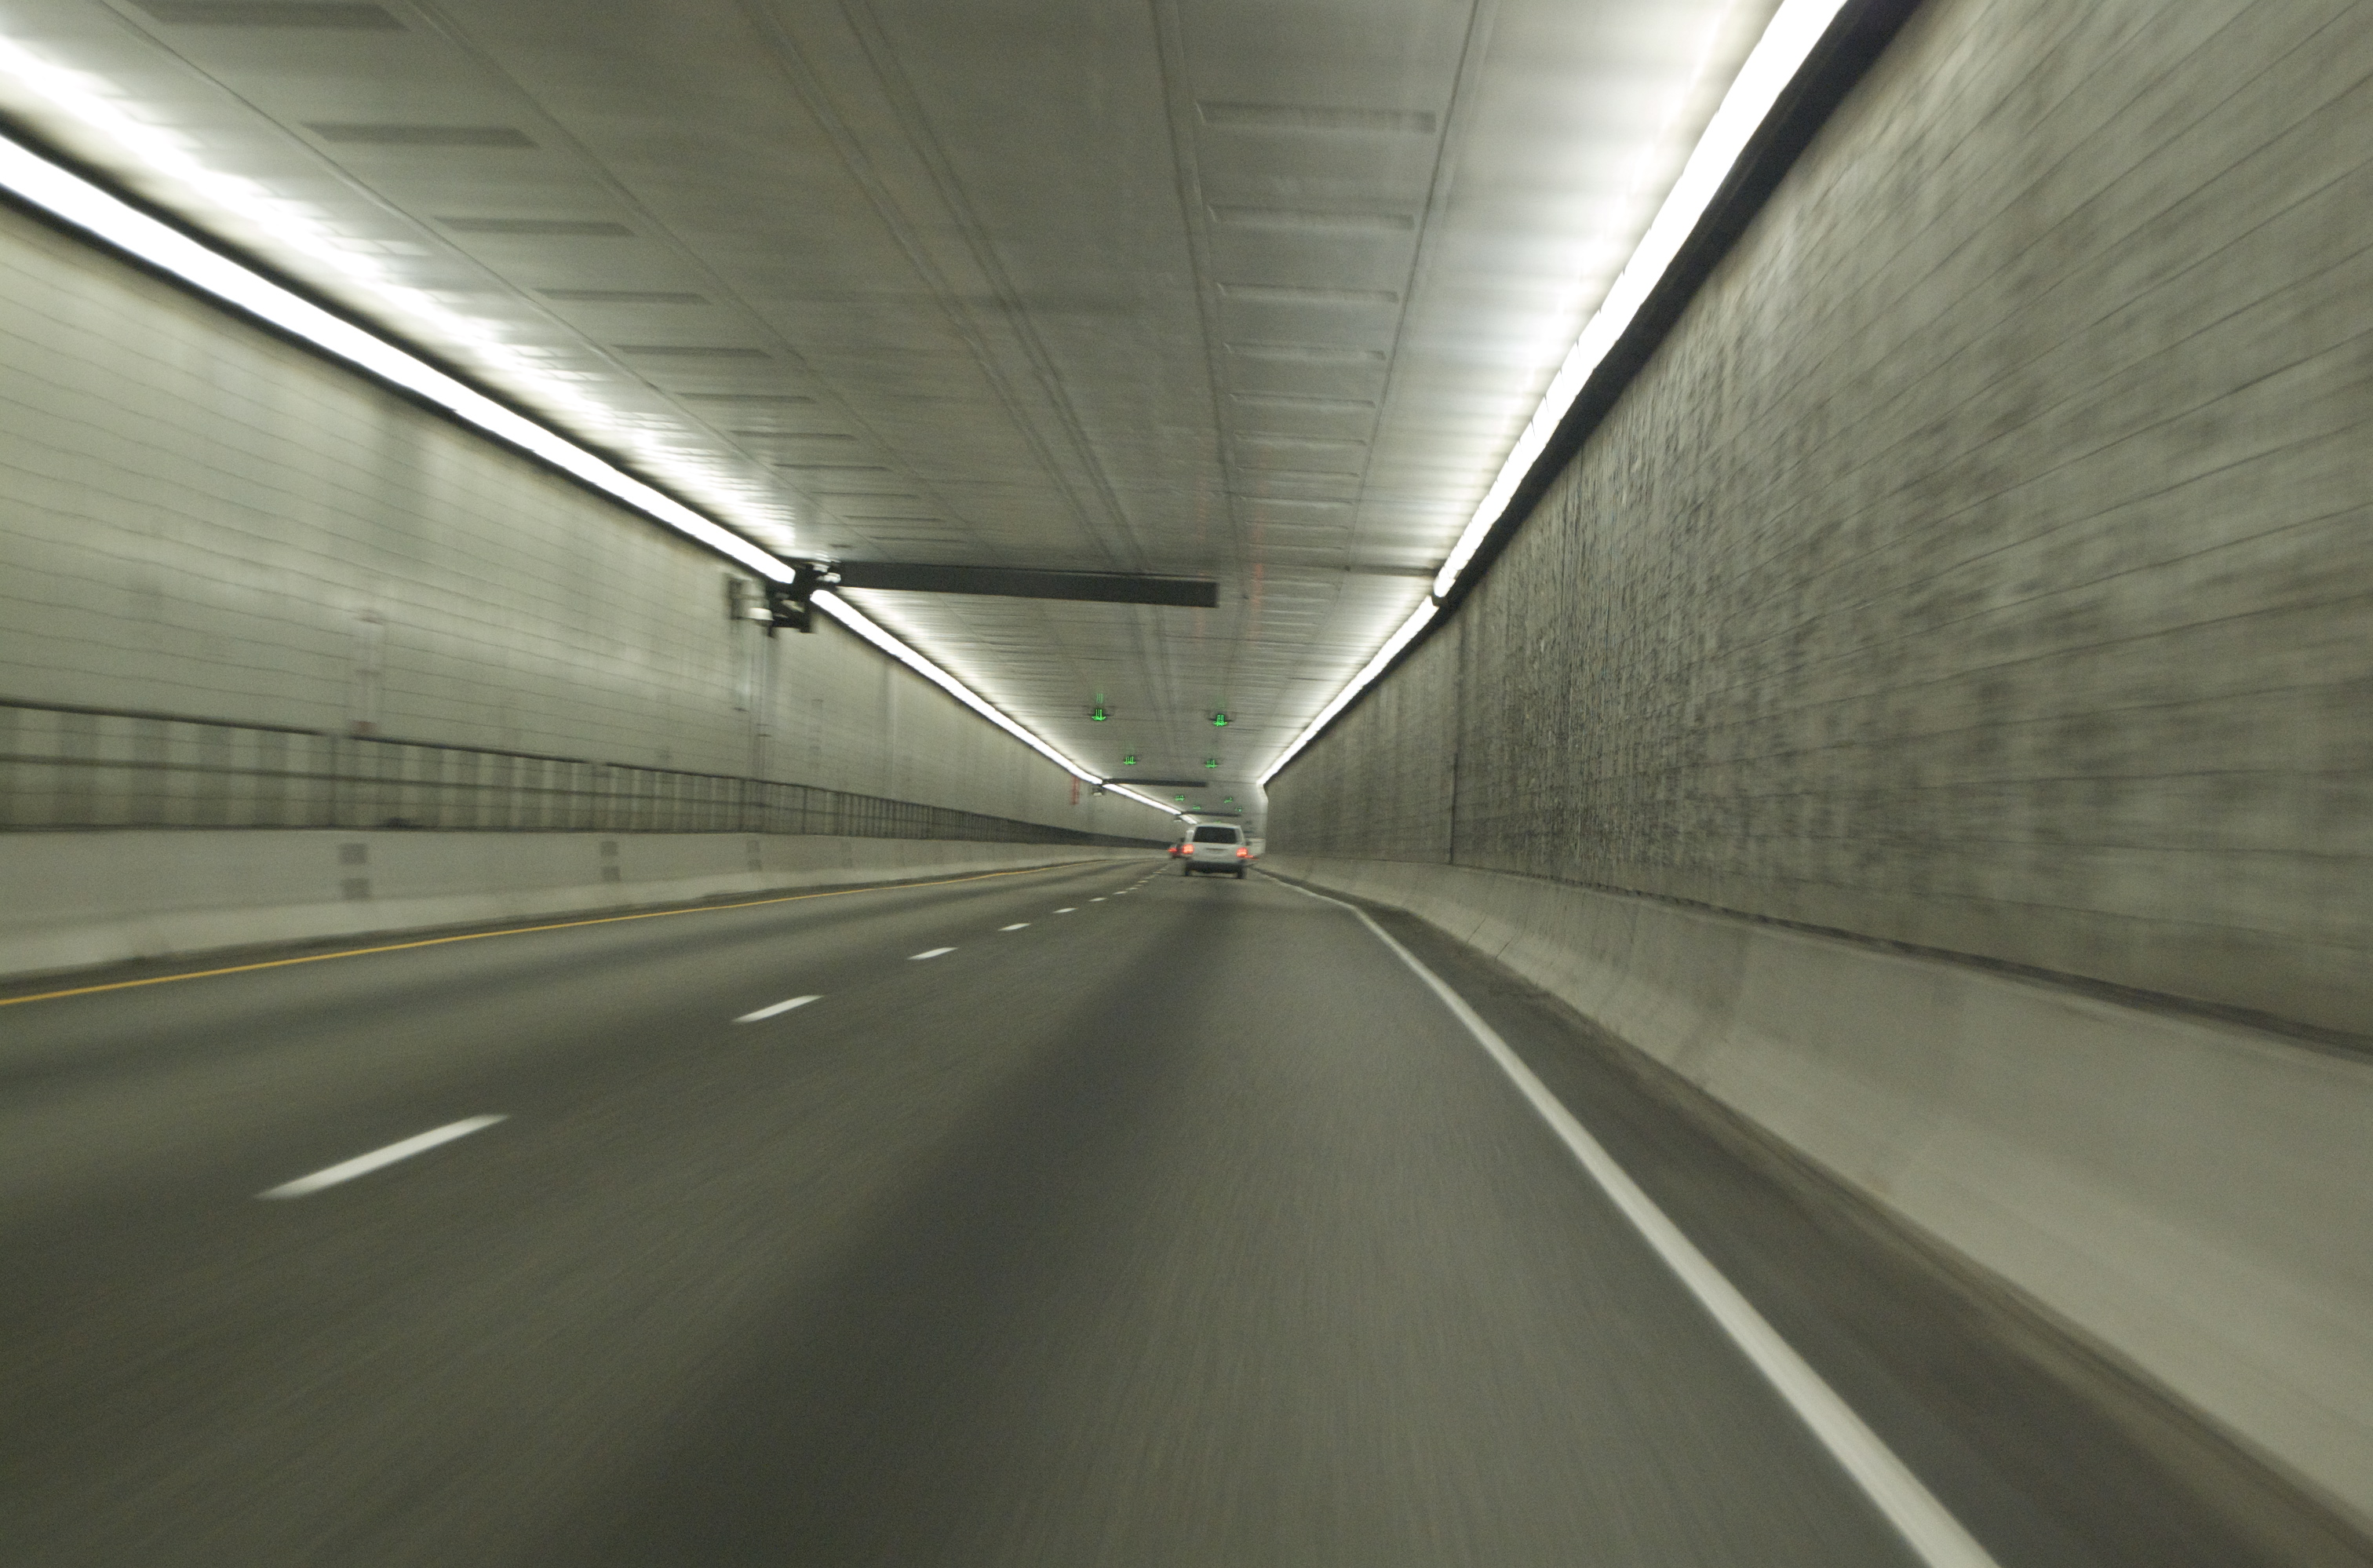 One-way,  2 lane traffic, inside the Eisenhower Tunnel in Colarado, USA